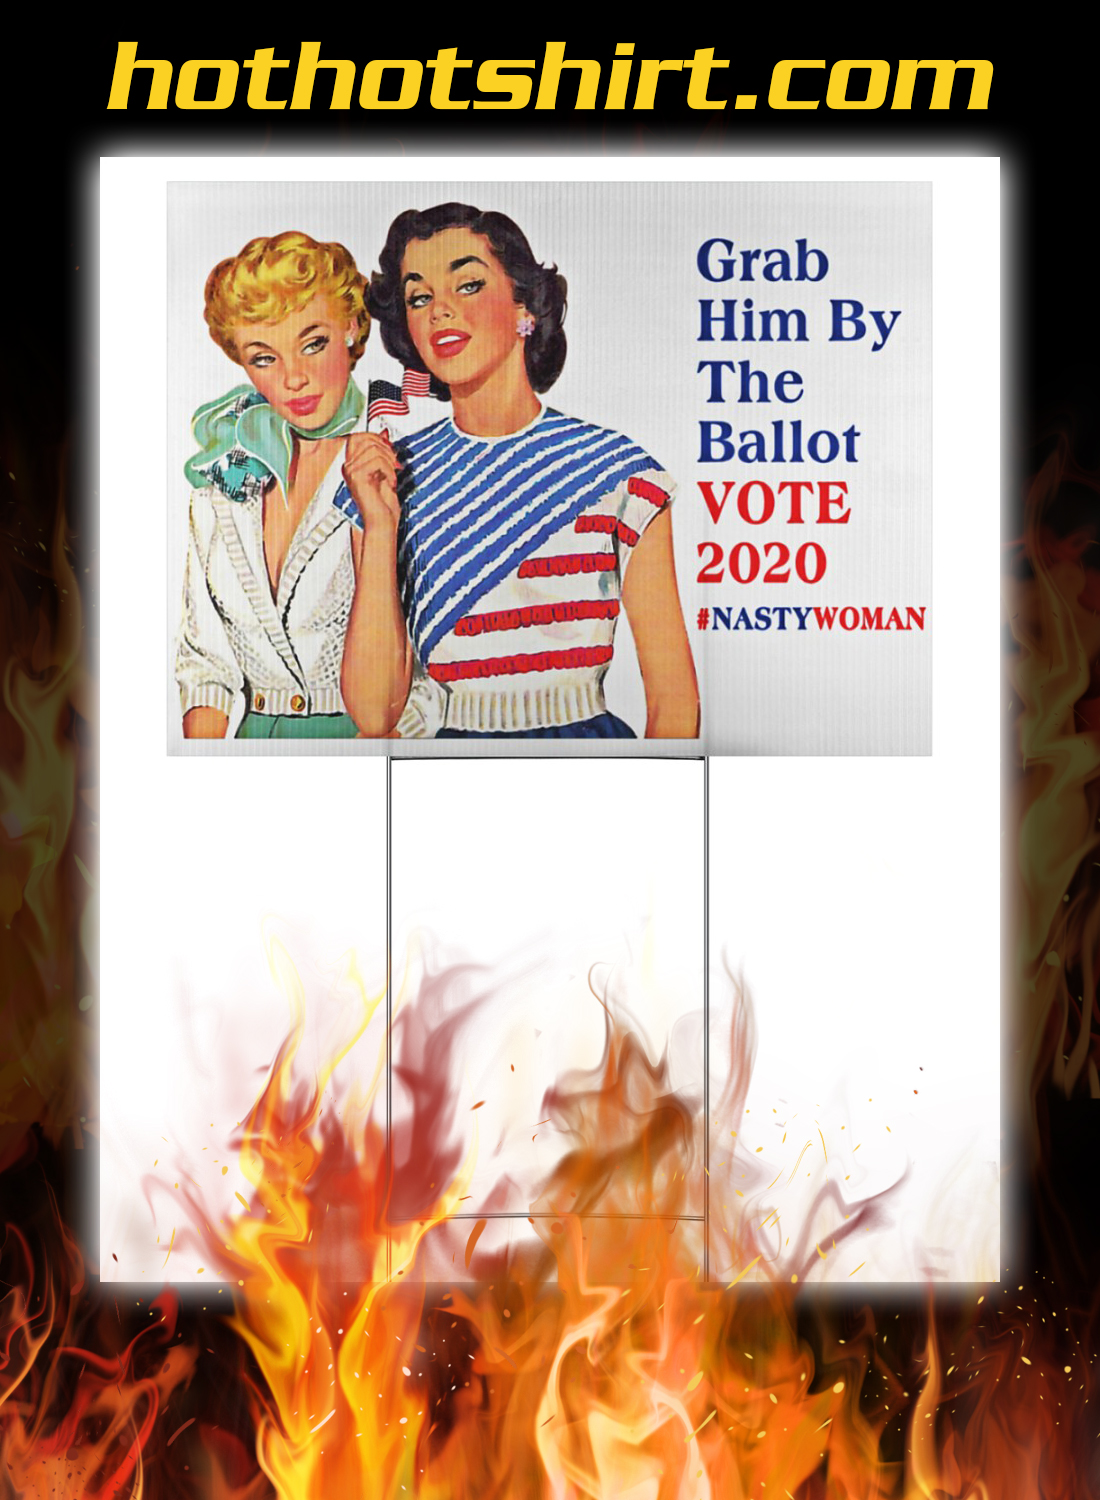 Women grab him by the ballot vote 2020 nasty woman yard signs 2